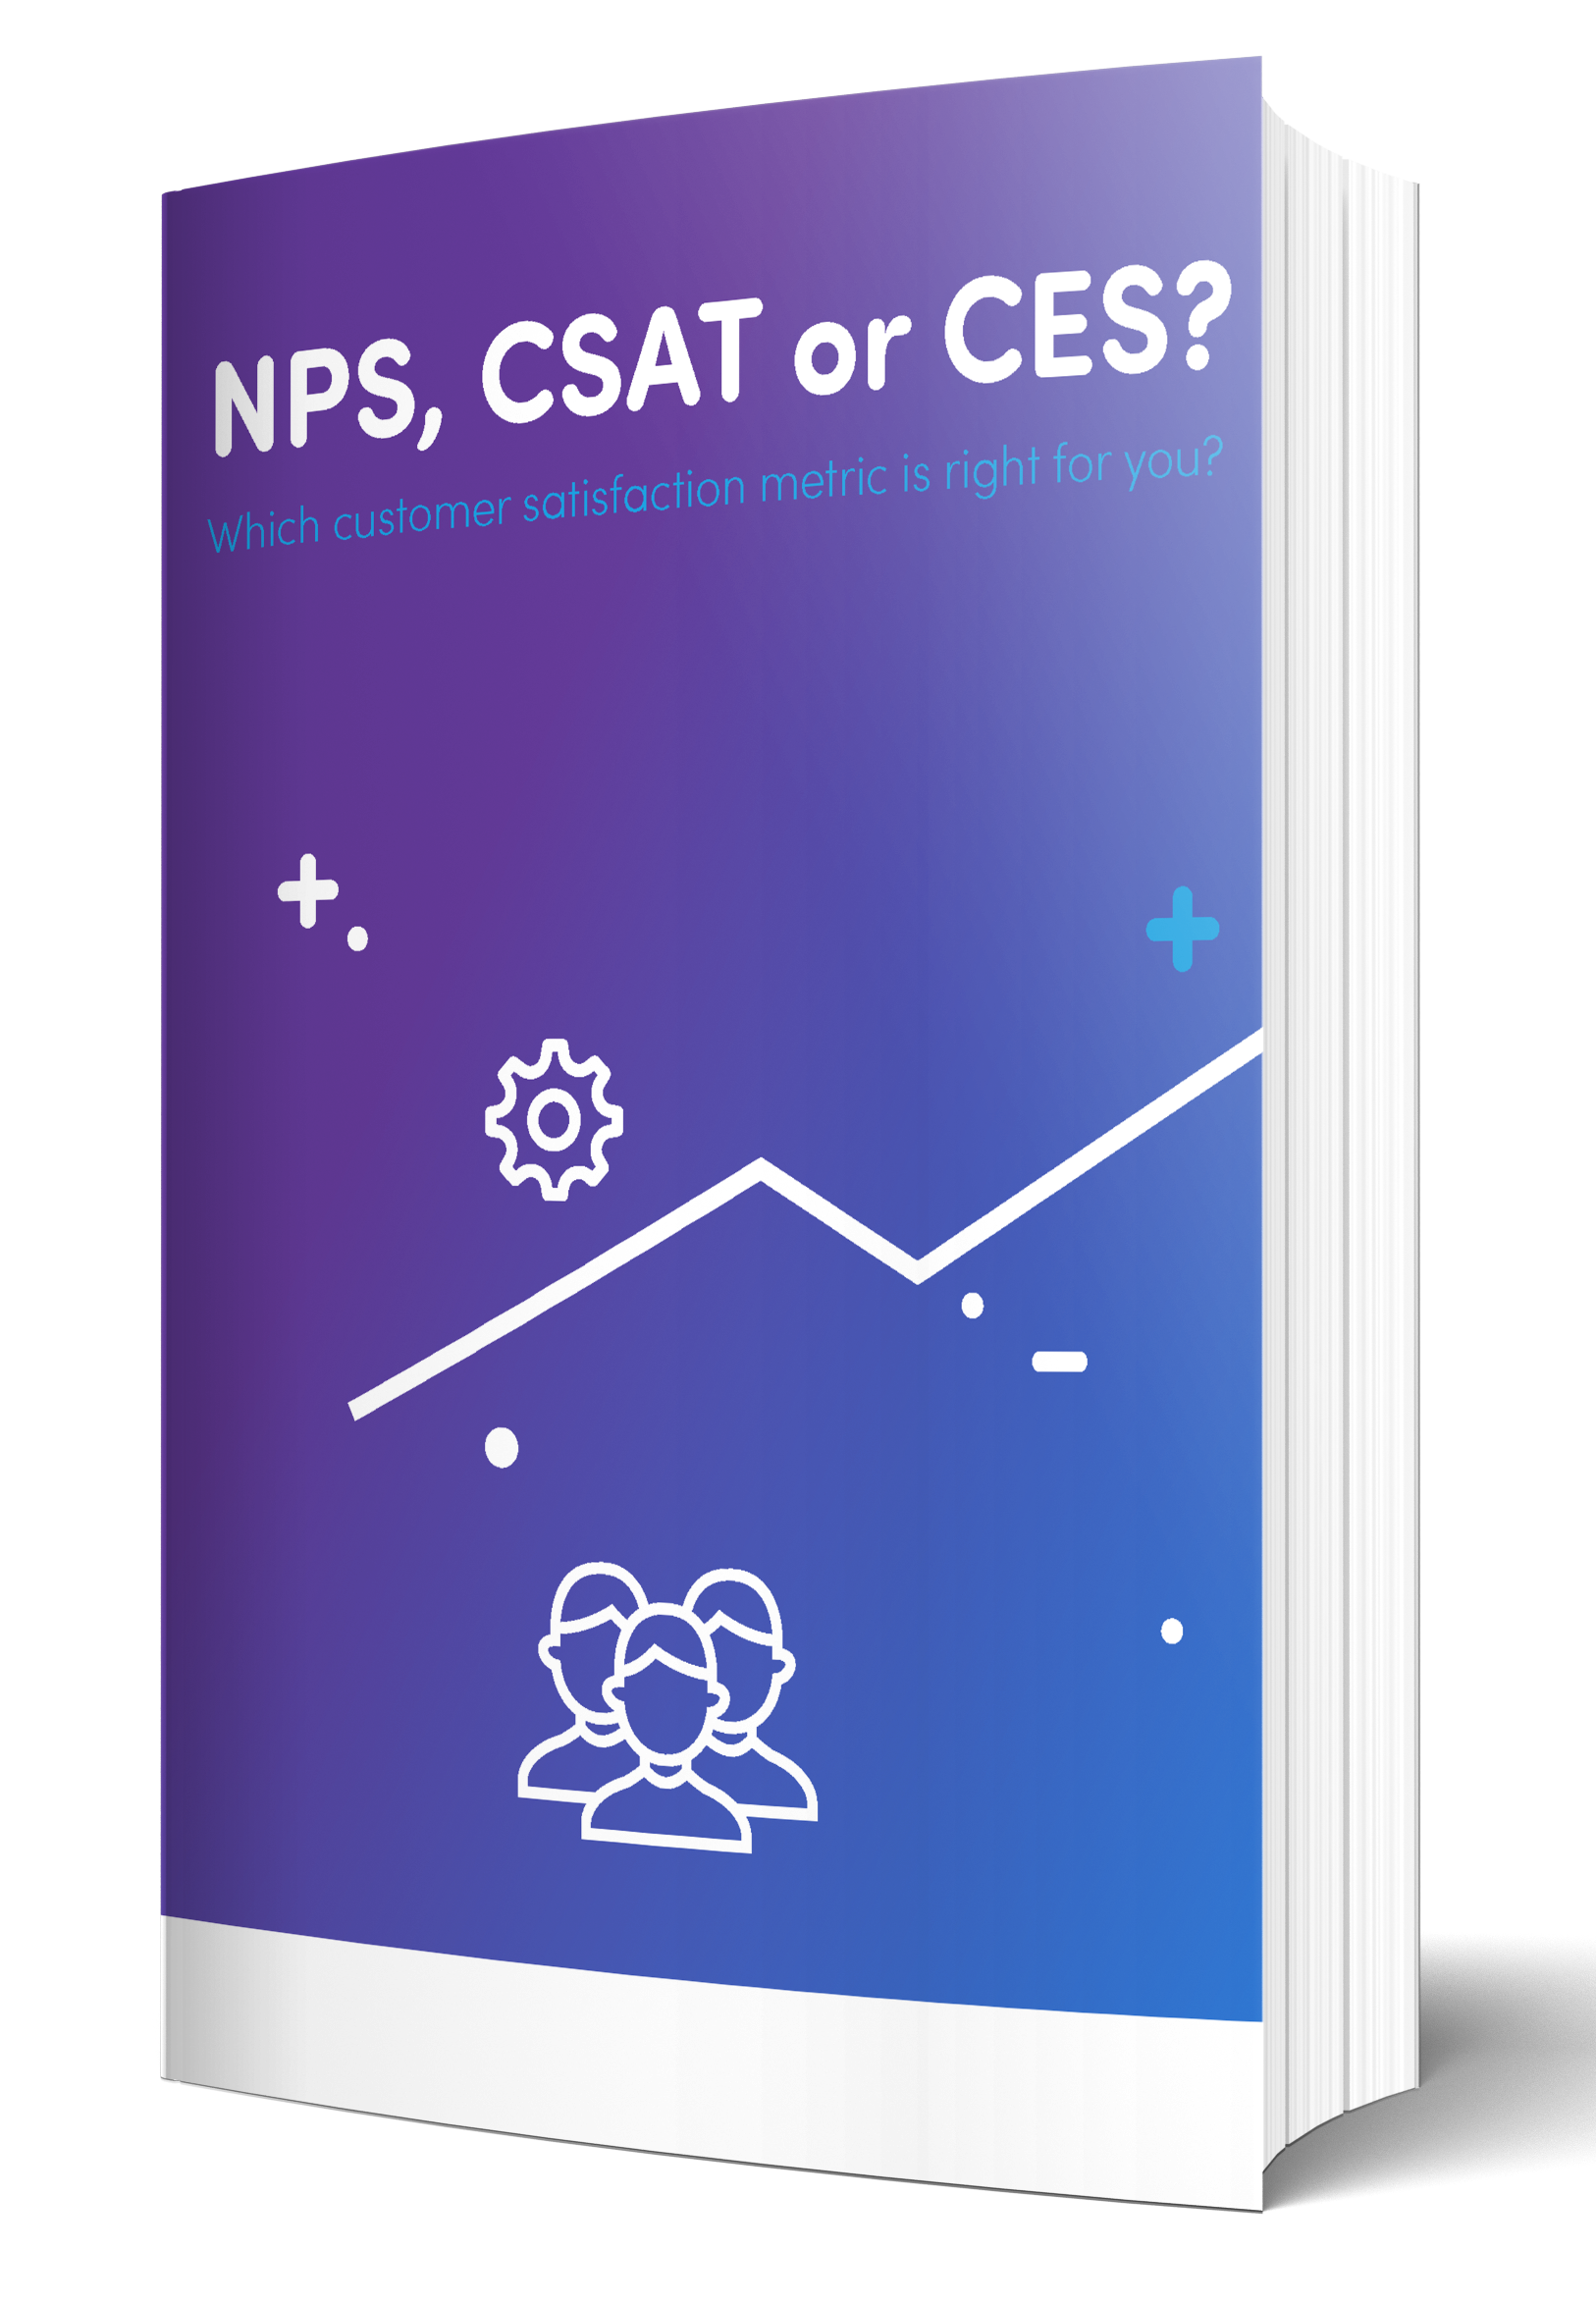 nps csat ces ebook hello customer